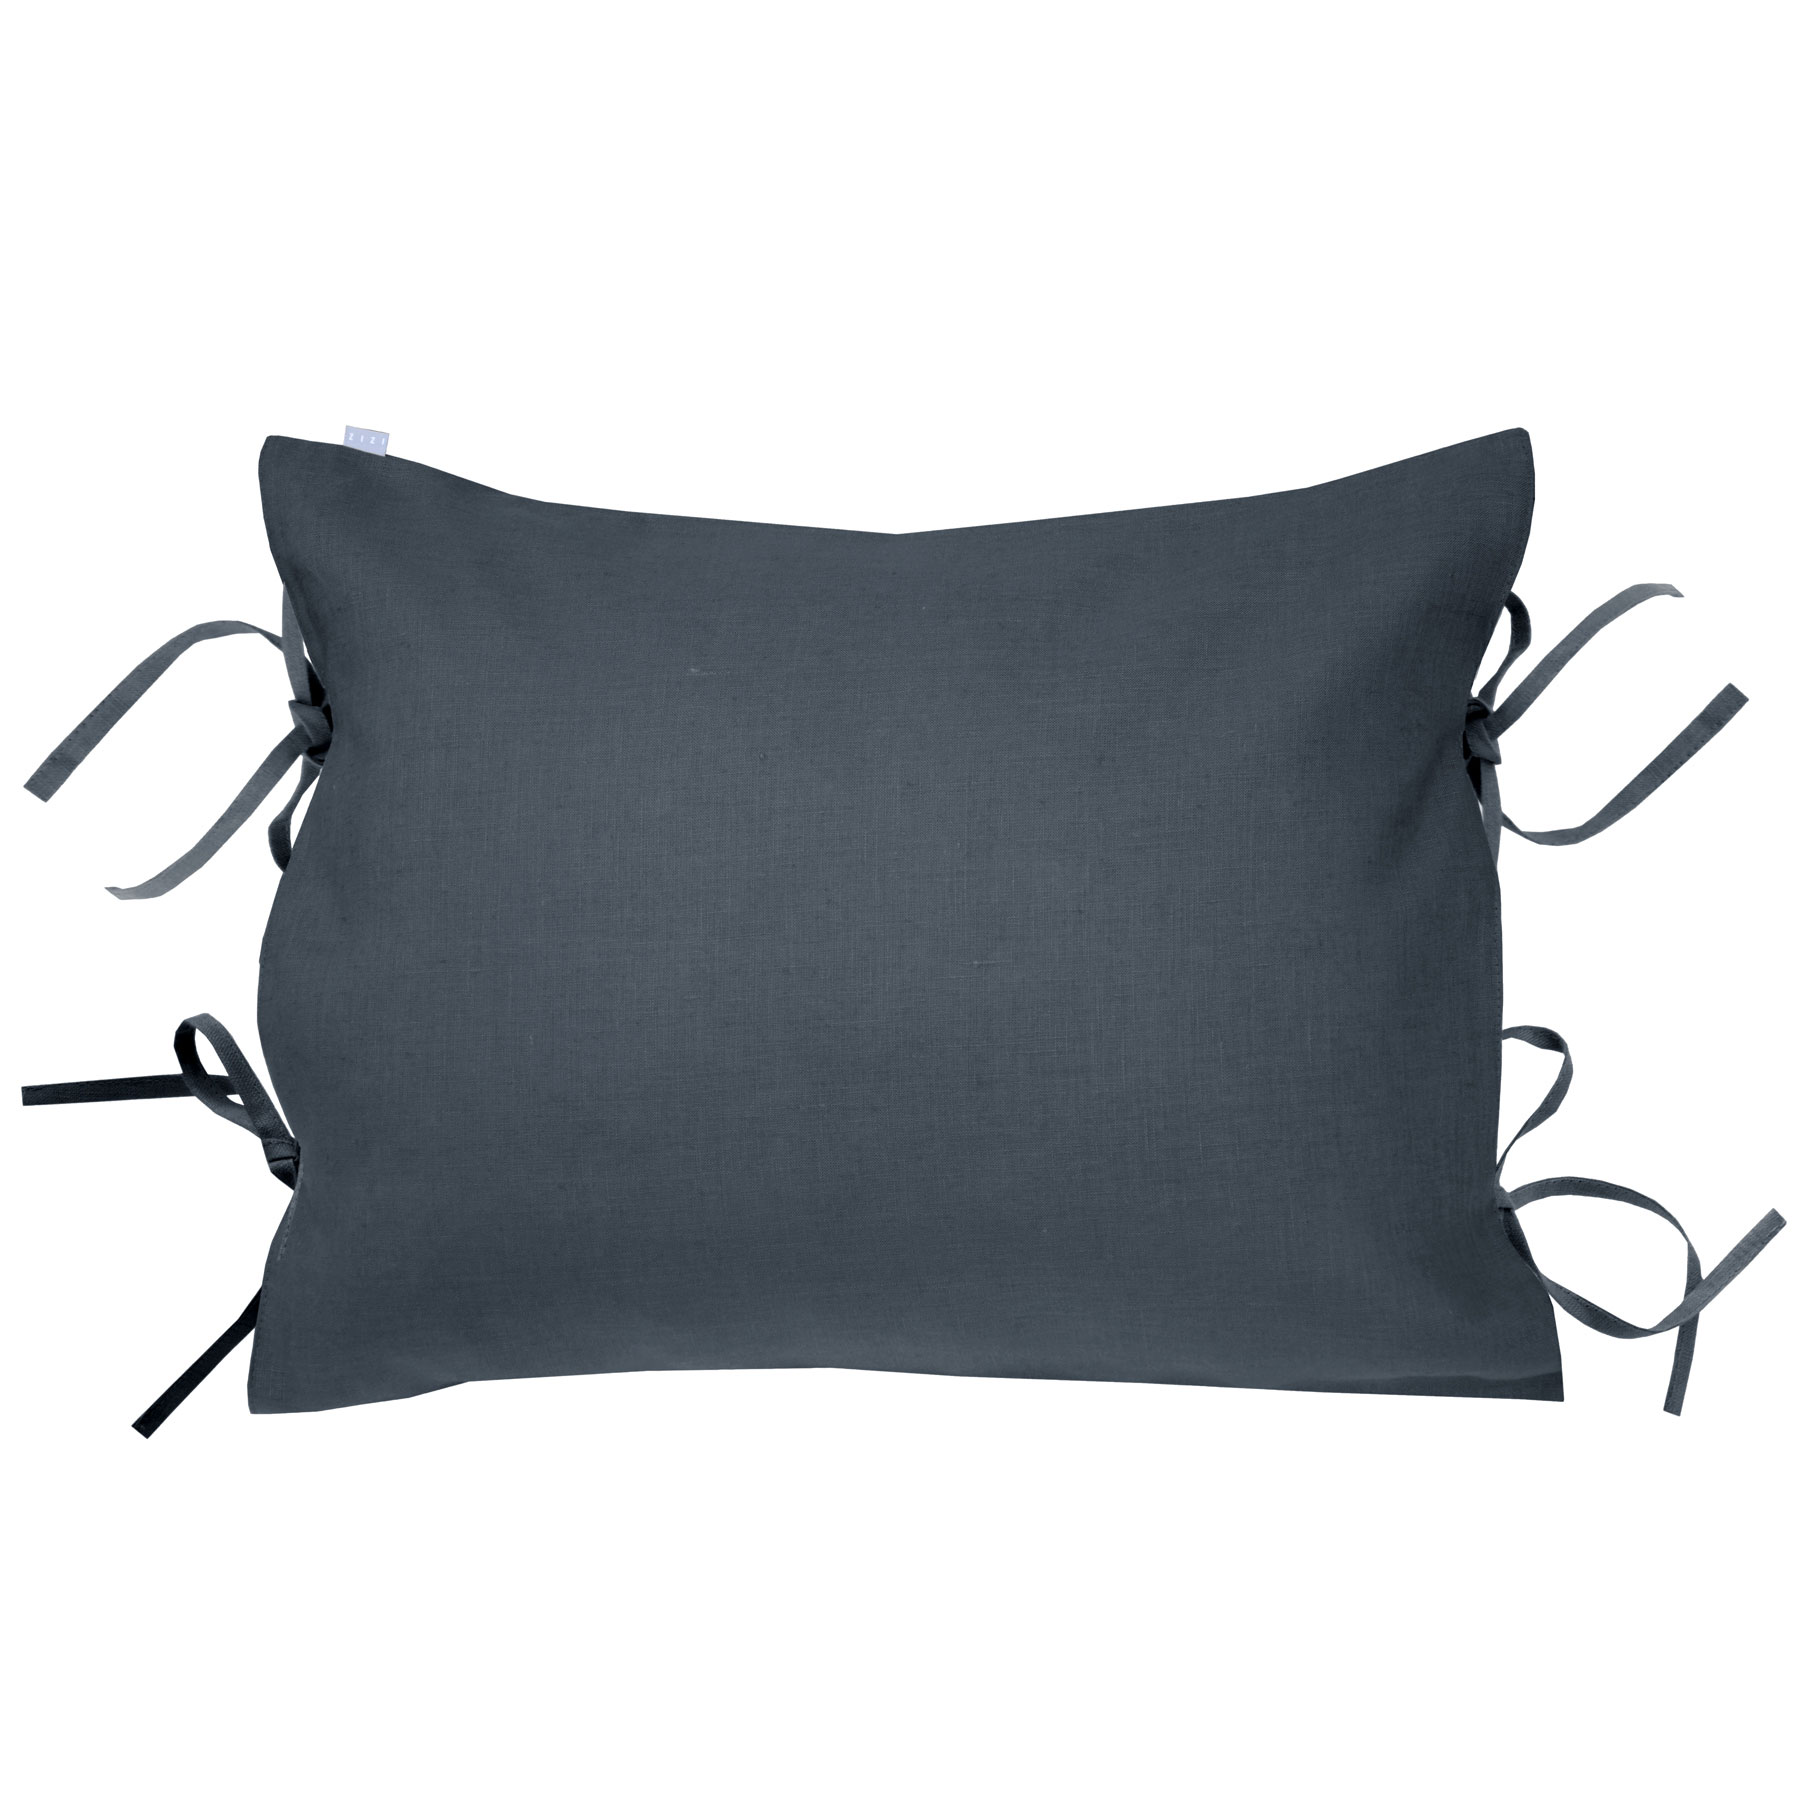 PILLOWCASE OSCAR <br />asphalt gray